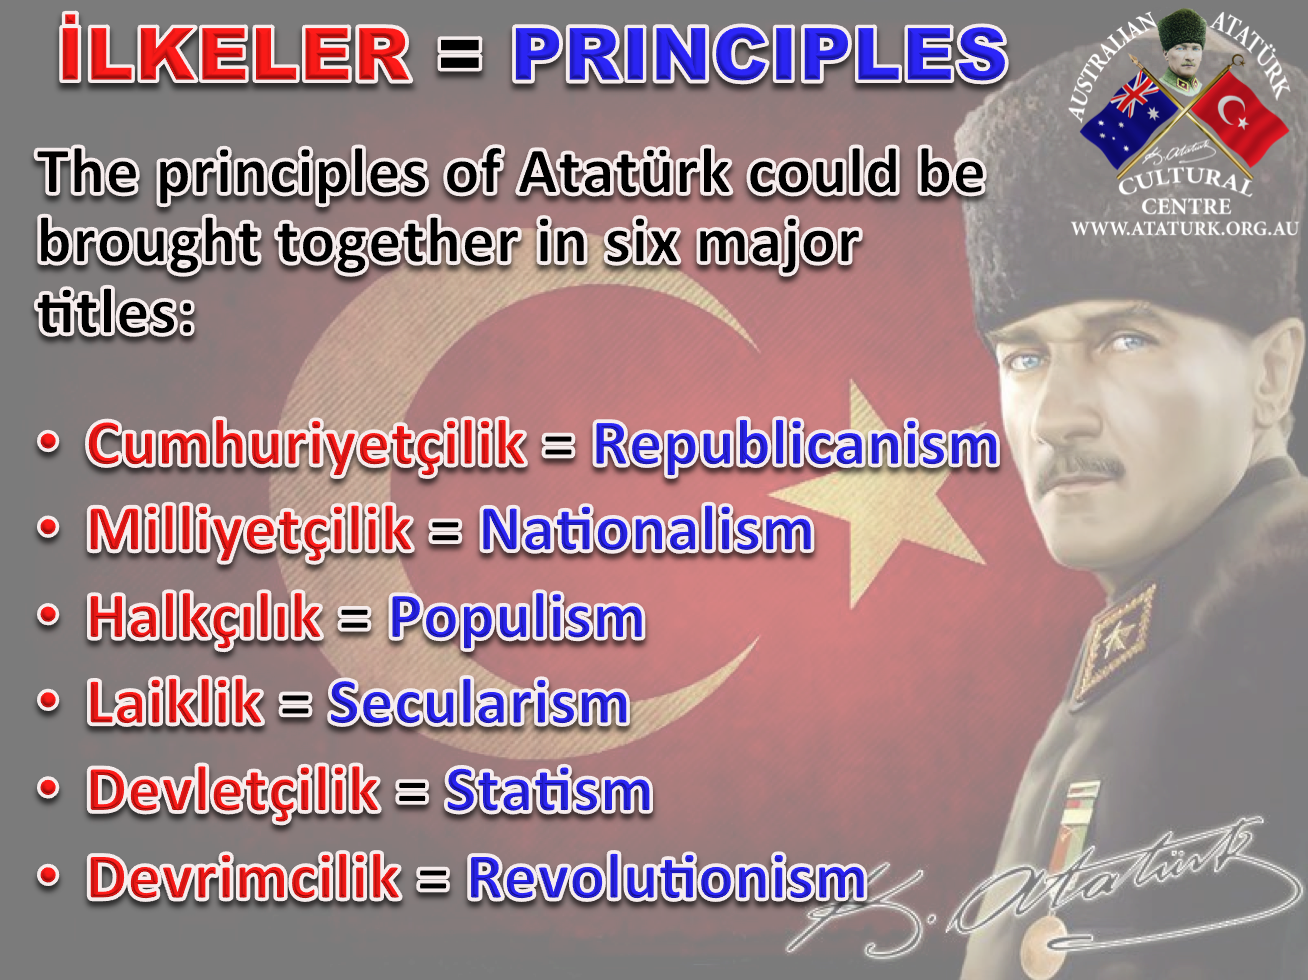 AAKM - Ataturk Principles and Reforms - 2 List